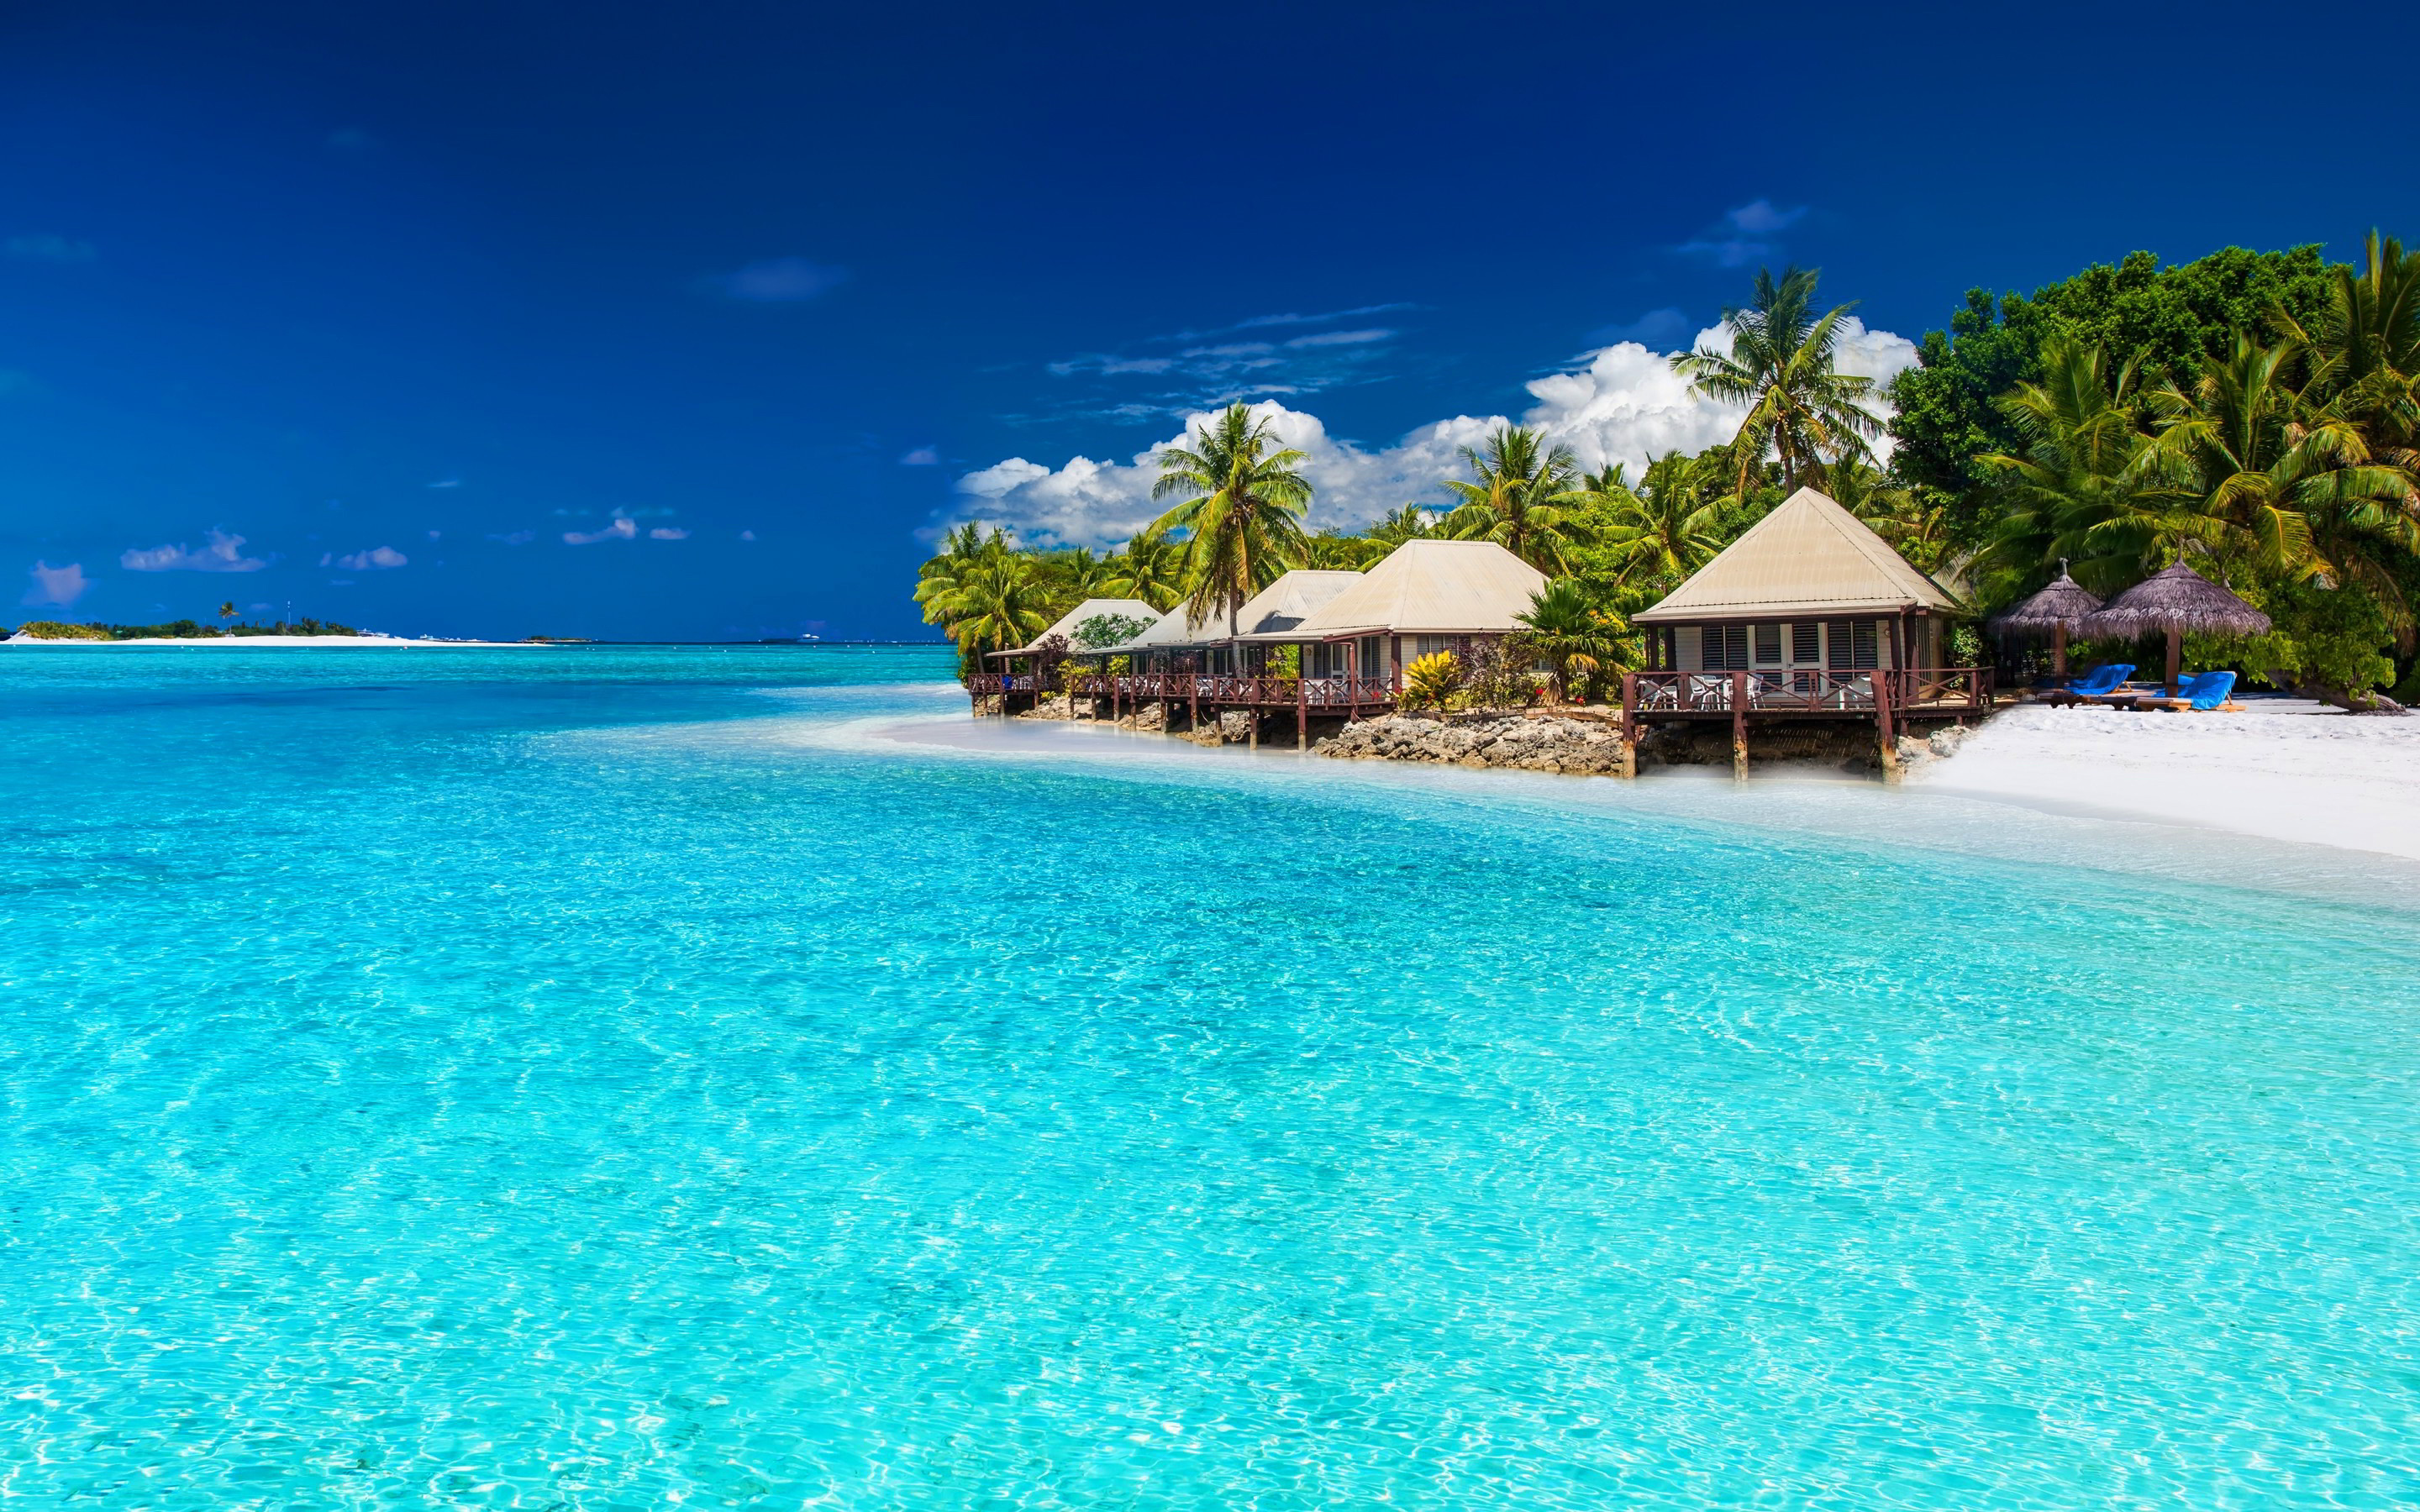 Tropical Beach Wallpapers THIS Wallpaper